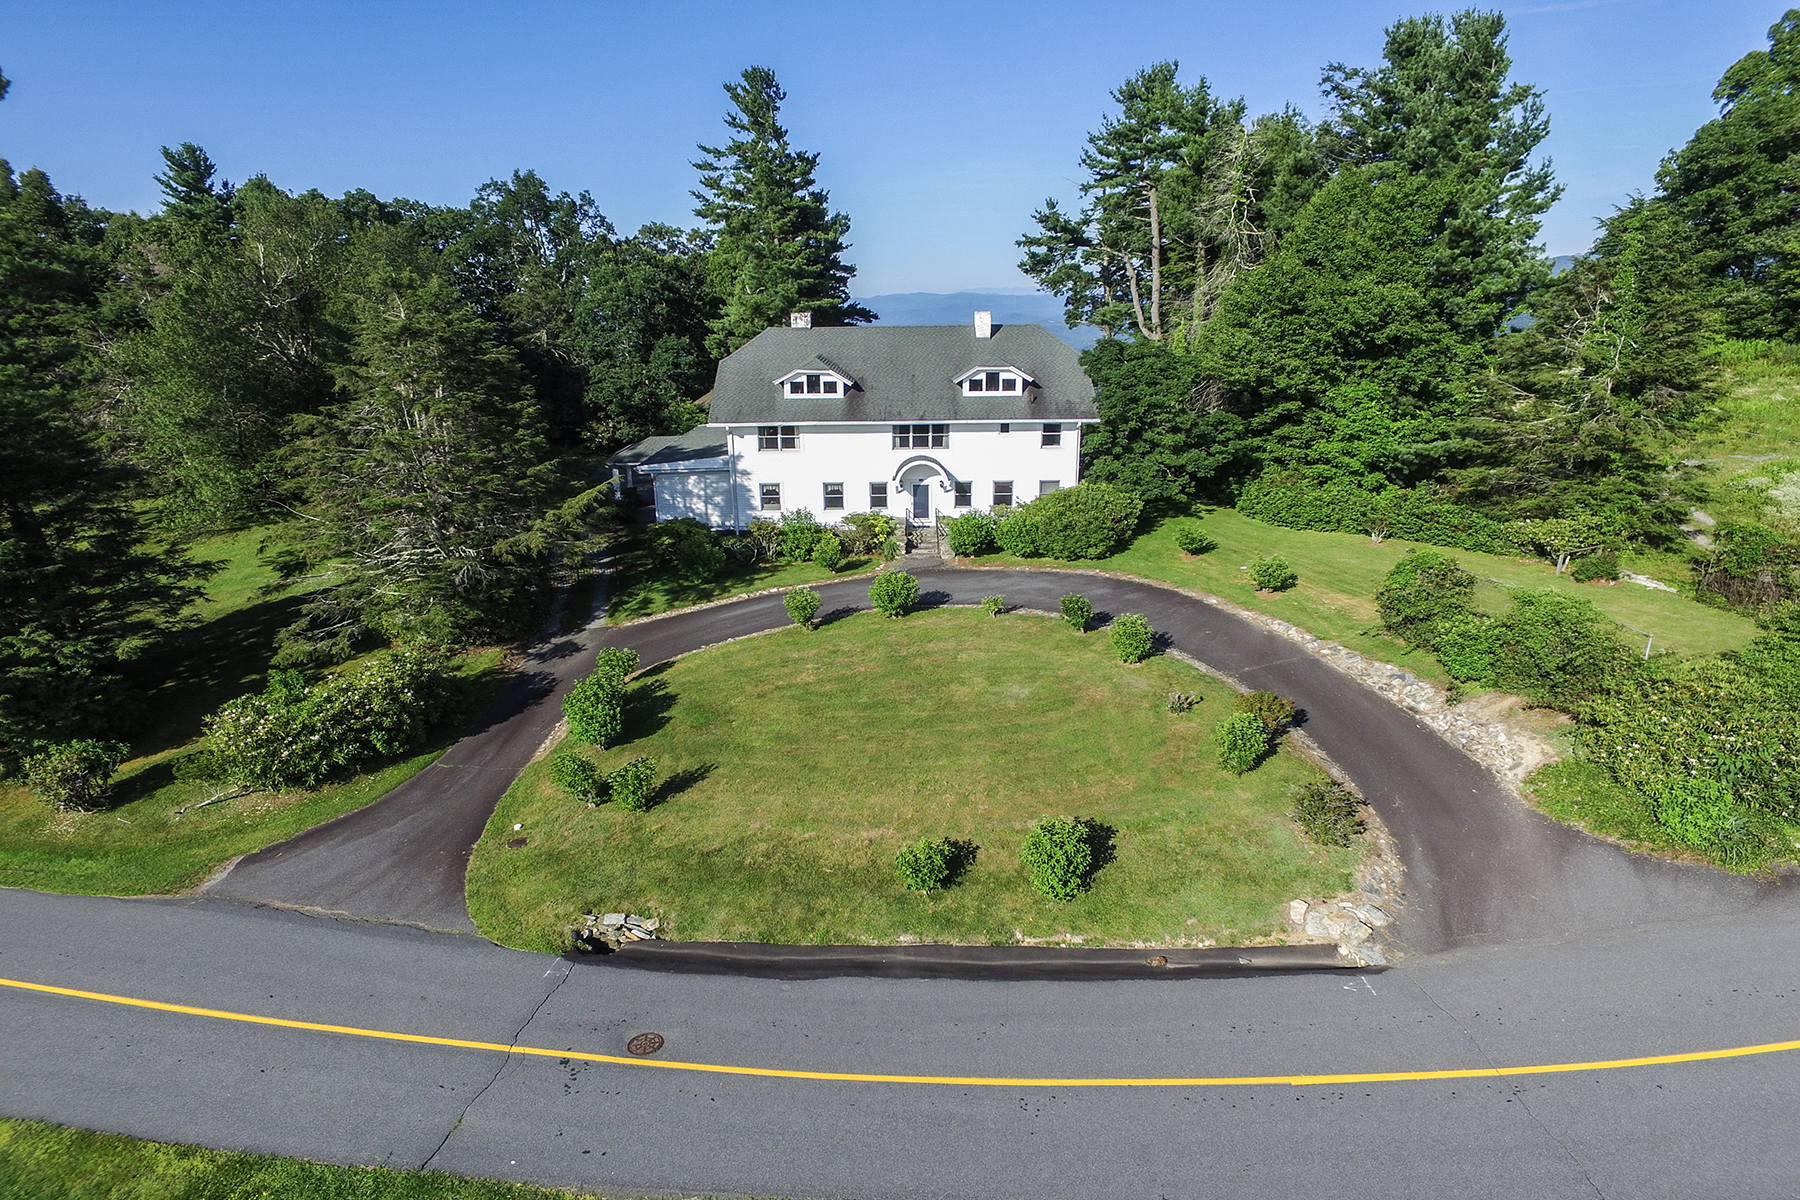 Maison unifamiliale pour l Vente à CENTURY OWNED PRIVATE FAMILY ESTATE 460/514 Pinnacle Ave, Blowing Rock, Carolina Du Nord 28605 États-Unis